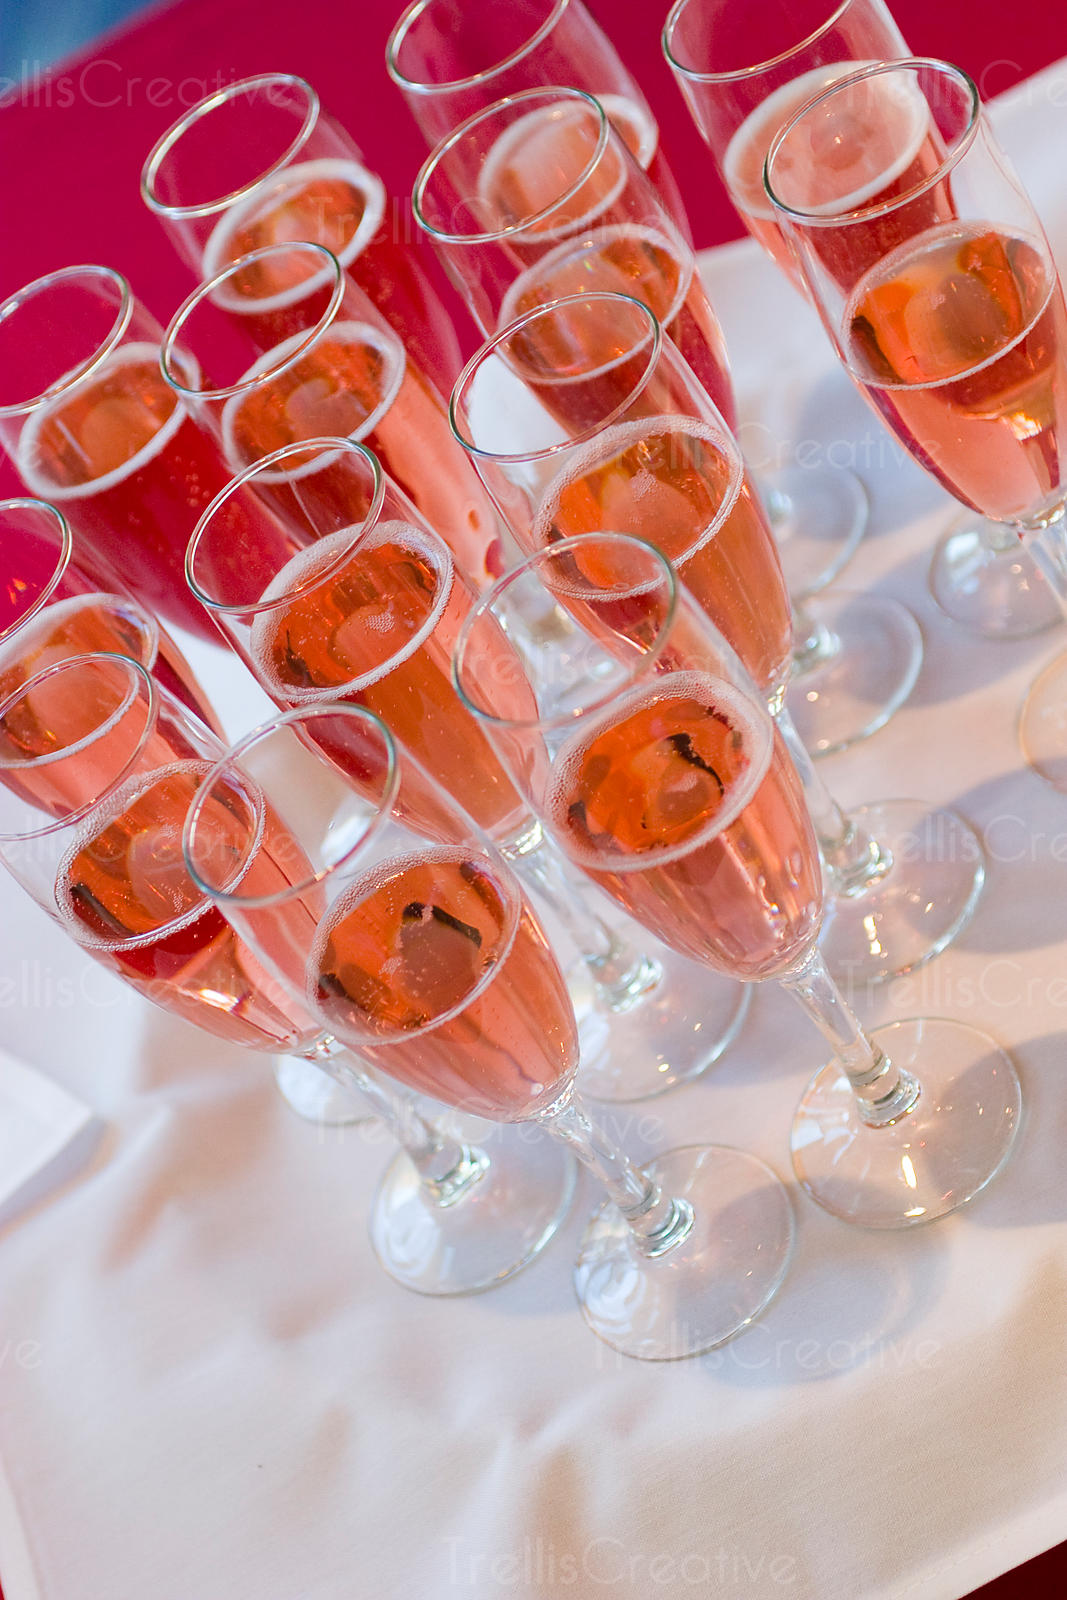 Glasses of pink rose sparkling wine waiting to be served